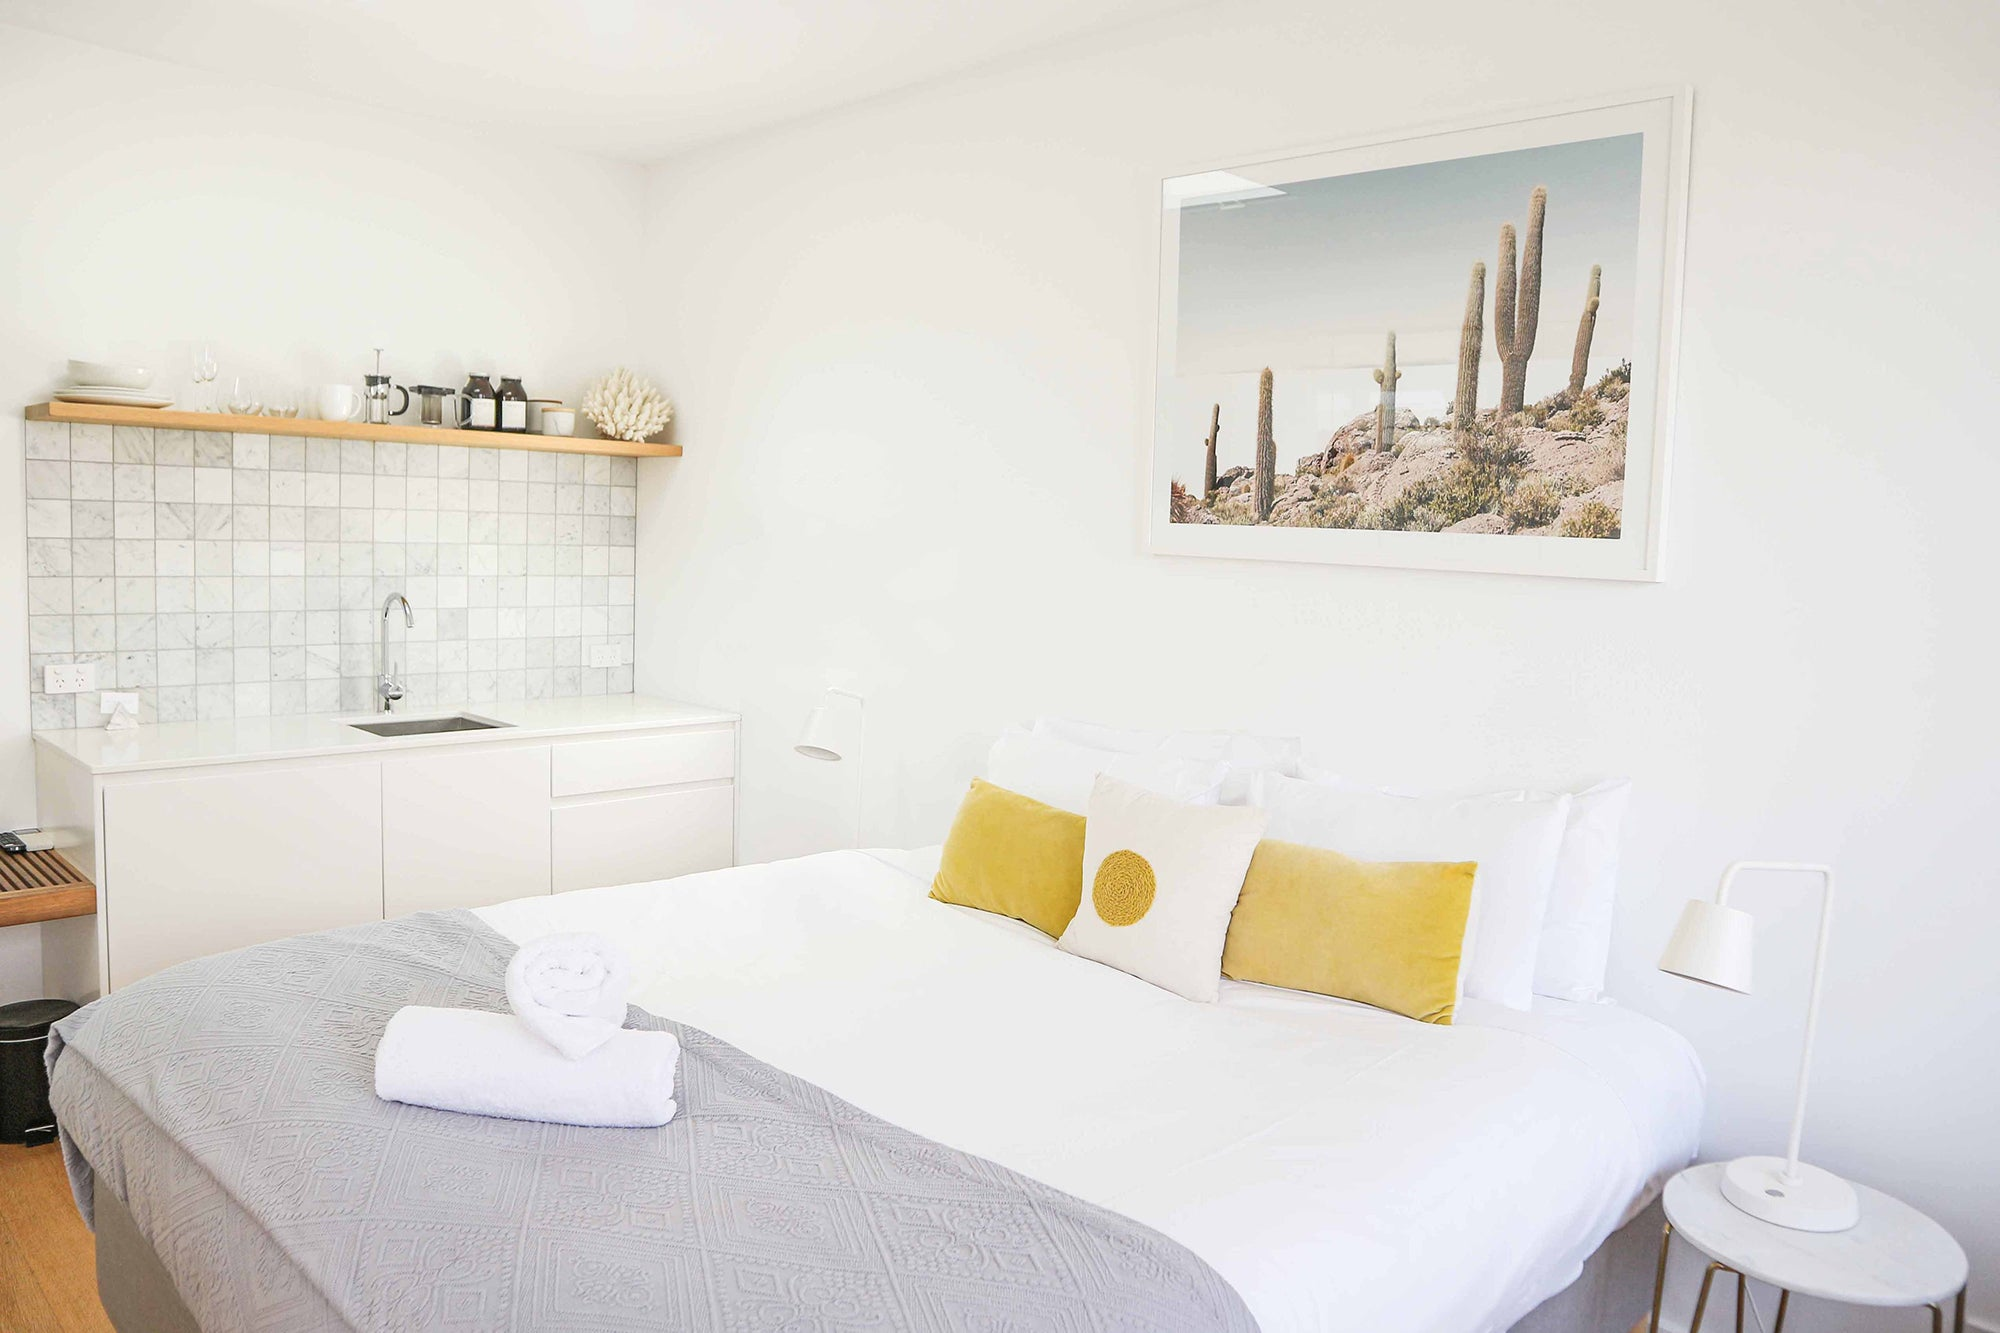 bedroom with a bed, sink, and yellow pillows